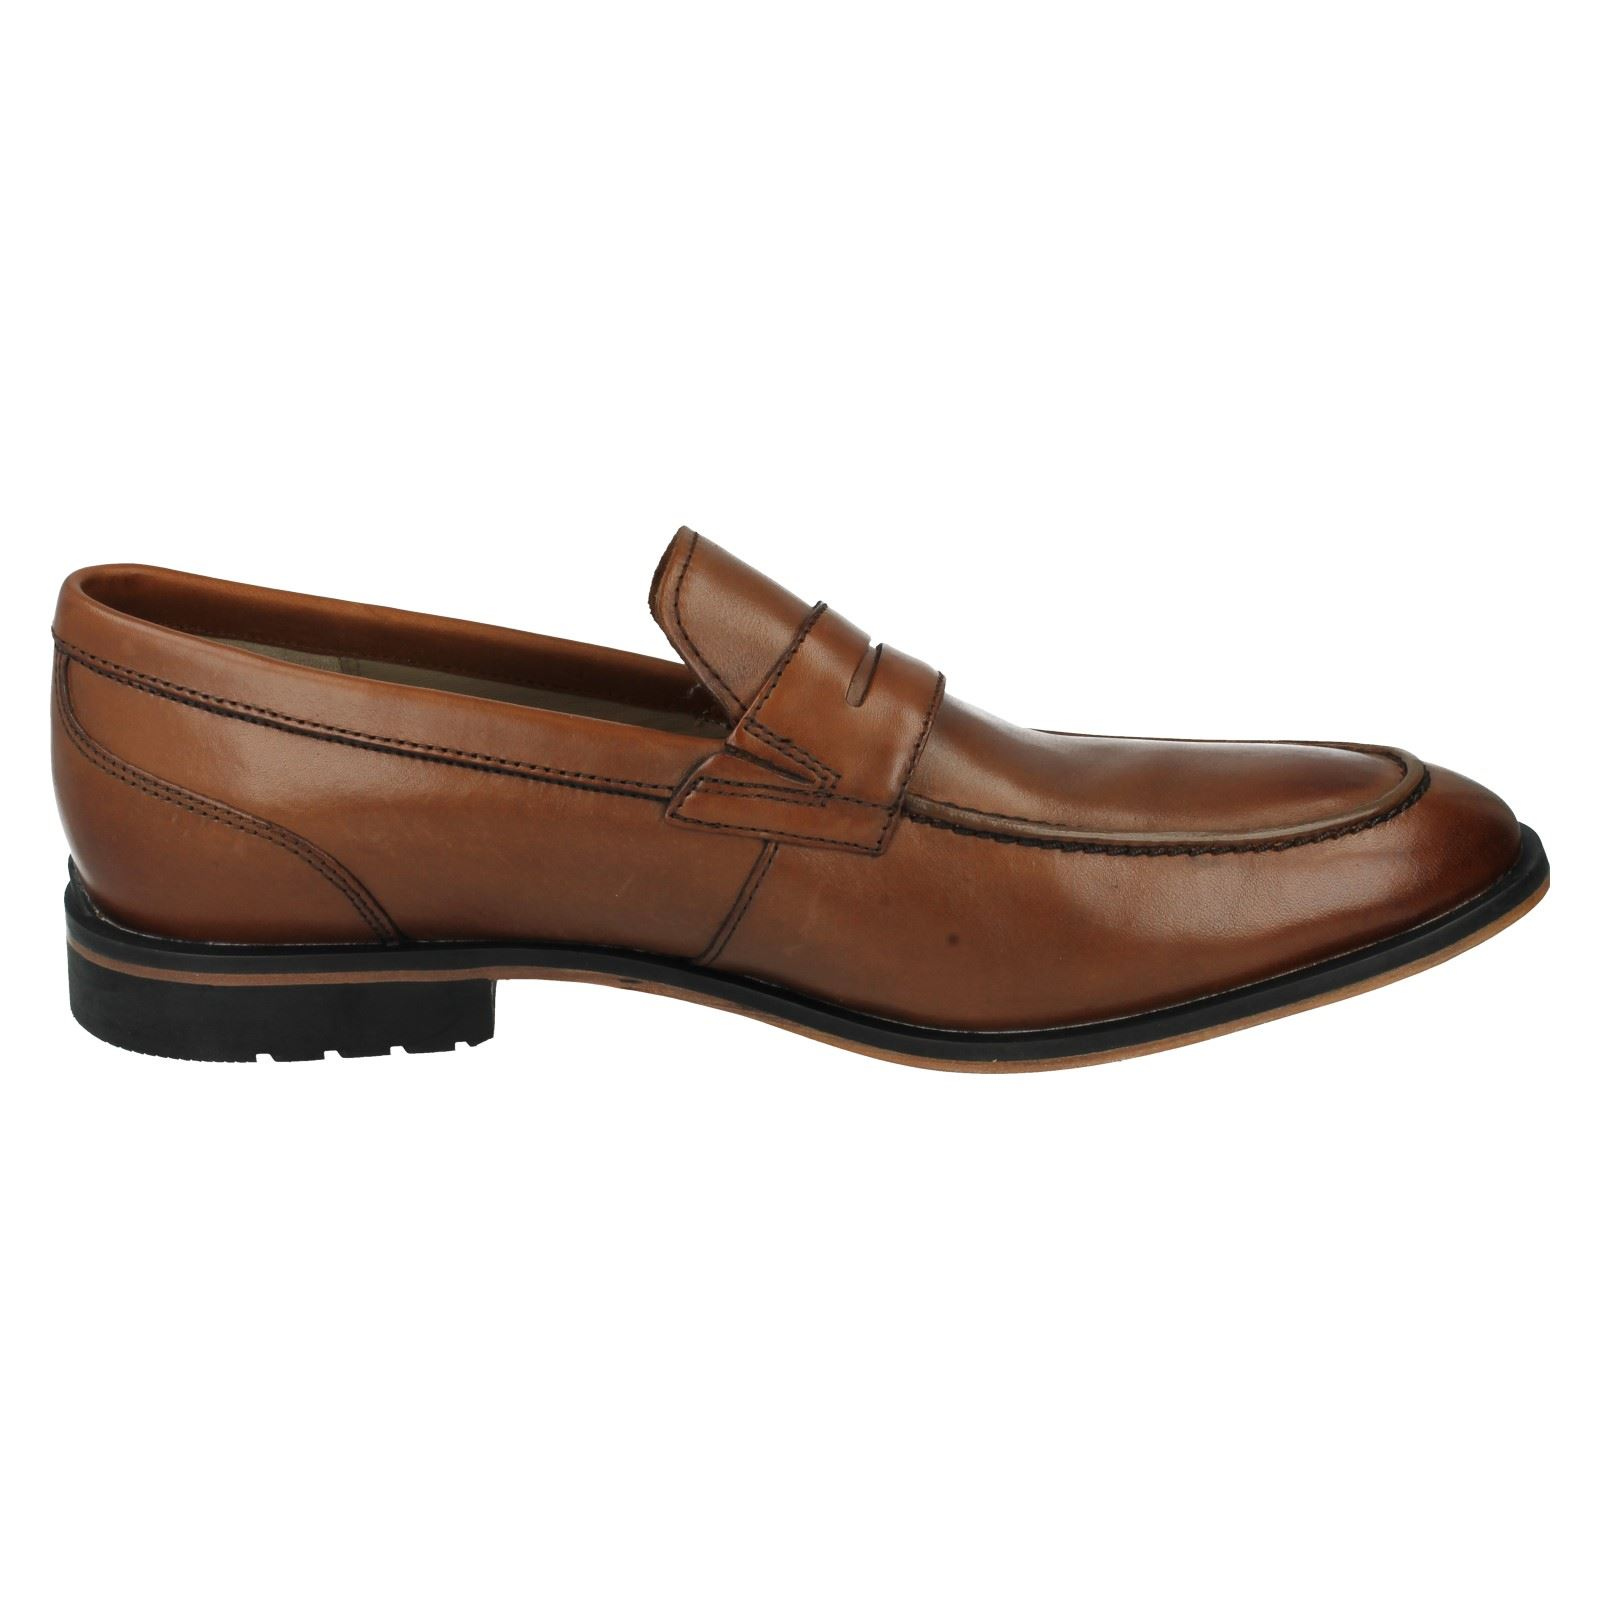 Mens Clarks Formal Shoes Shoes Shoes The Style - Gatley Step c2137a